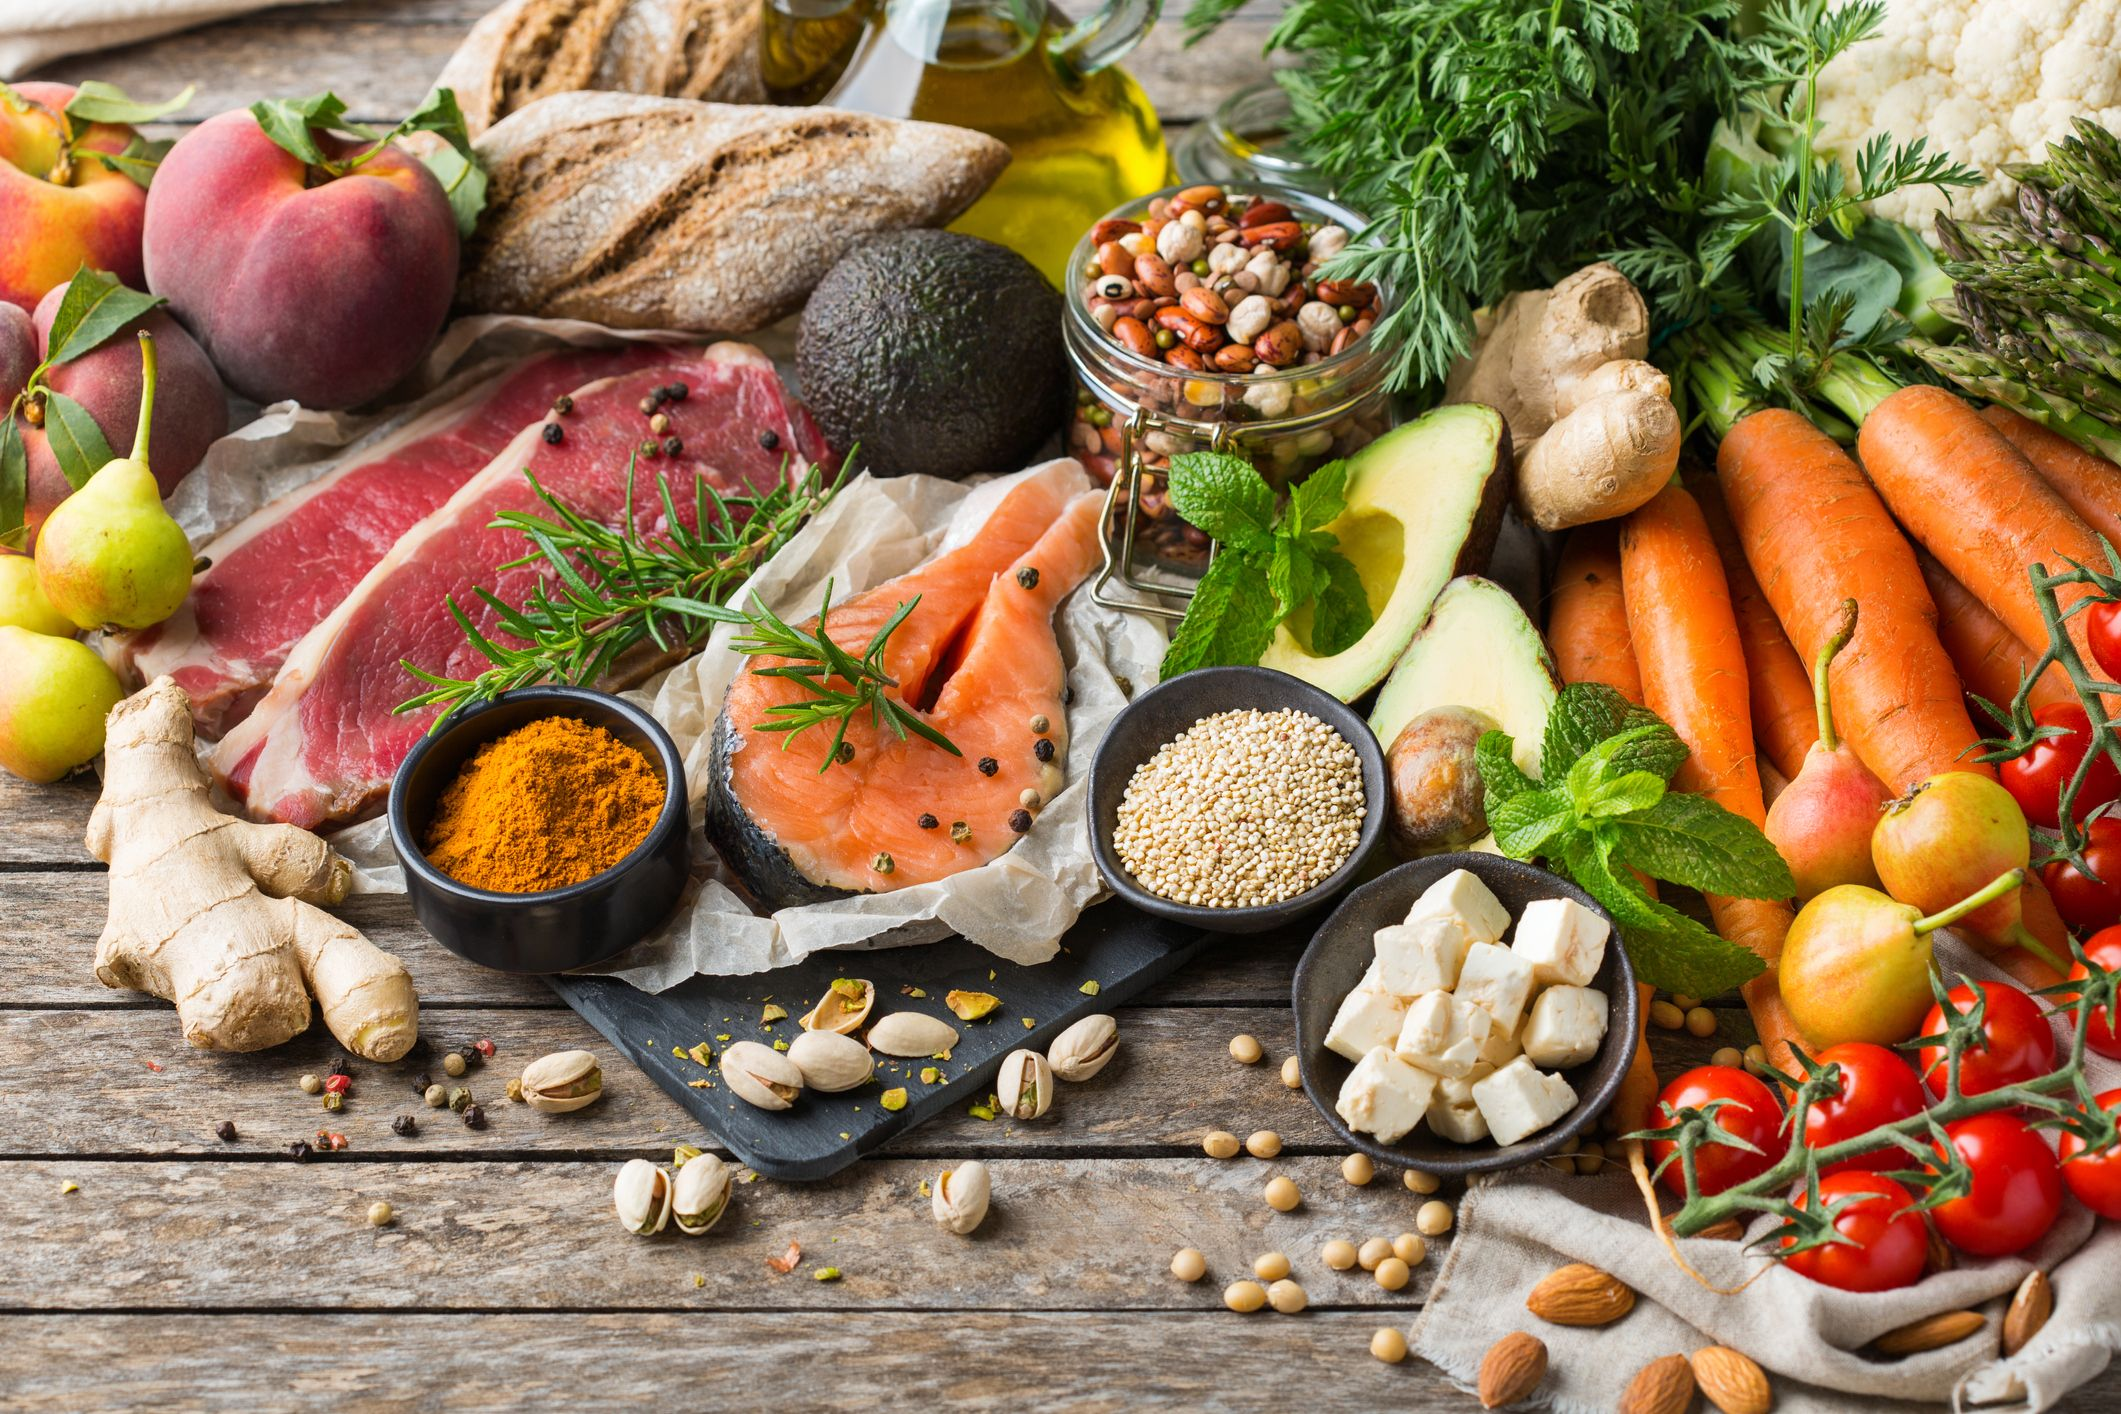 What Is the Flexitarian Diet? - How Often do Flexitarians Eat Meat